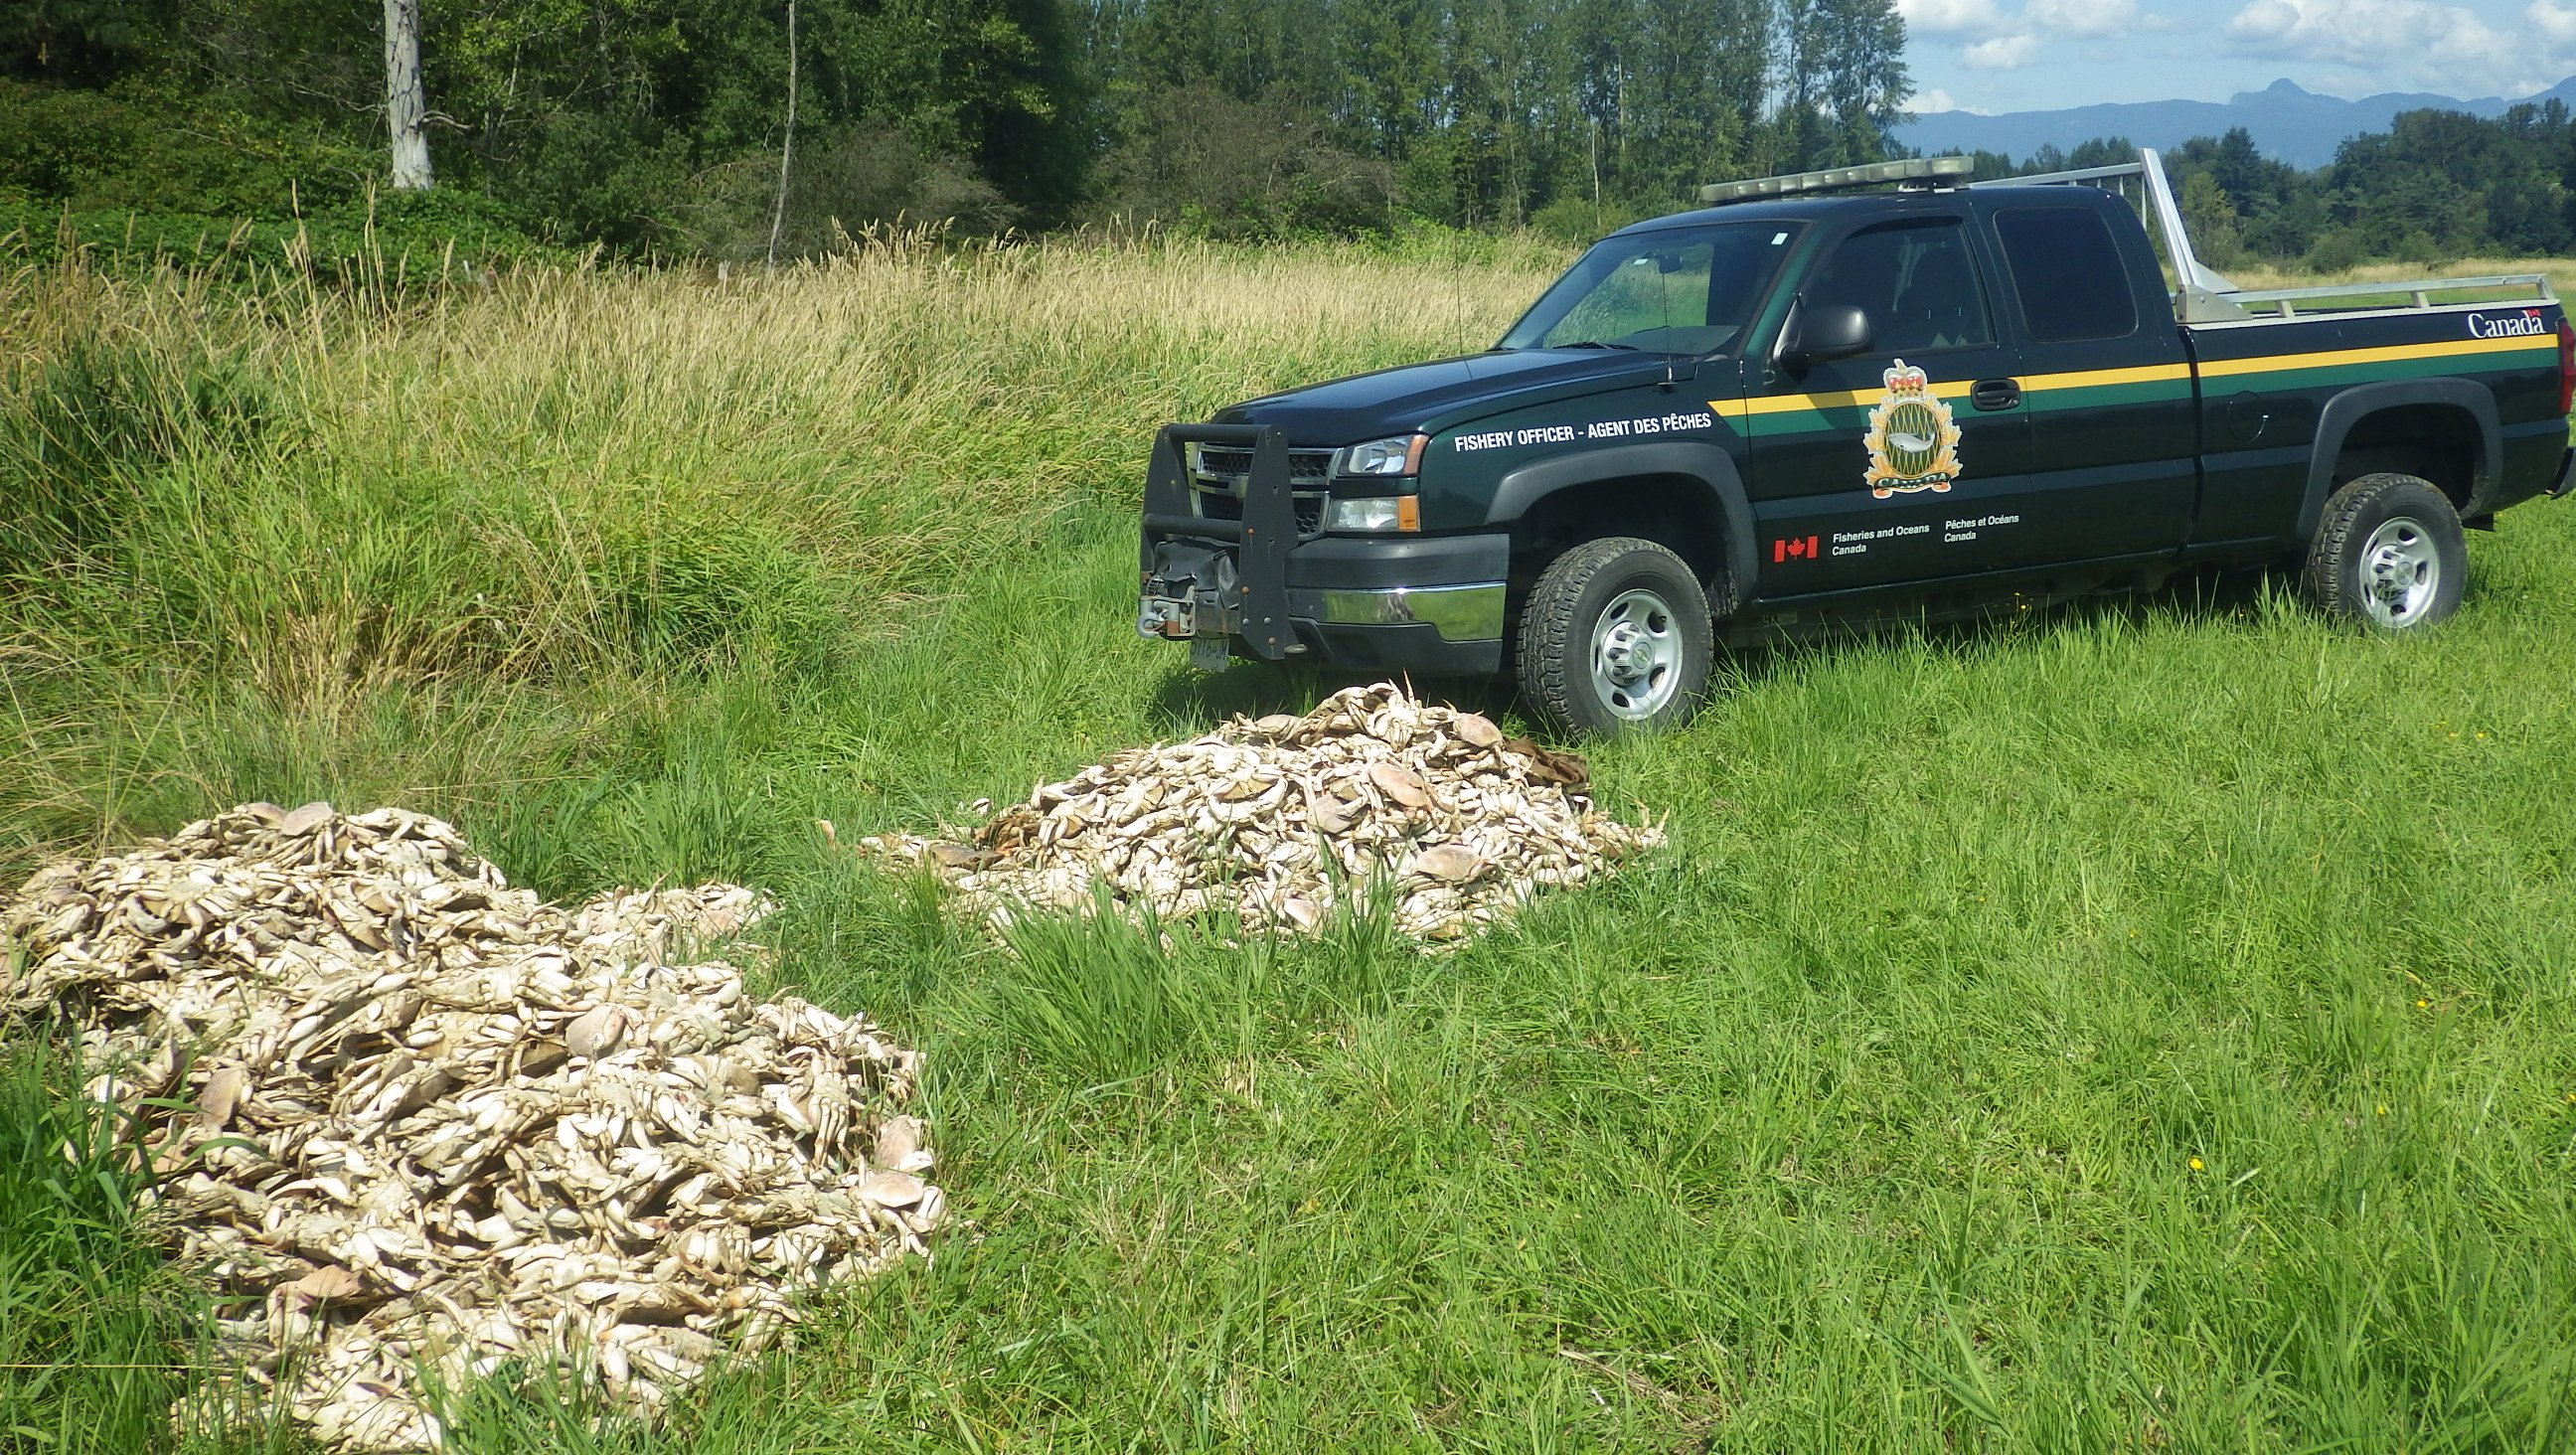 DFO Launches Investigation of Illegal Dumping of 1,500 lbs. of Crab in Maple Ridge, B.C.